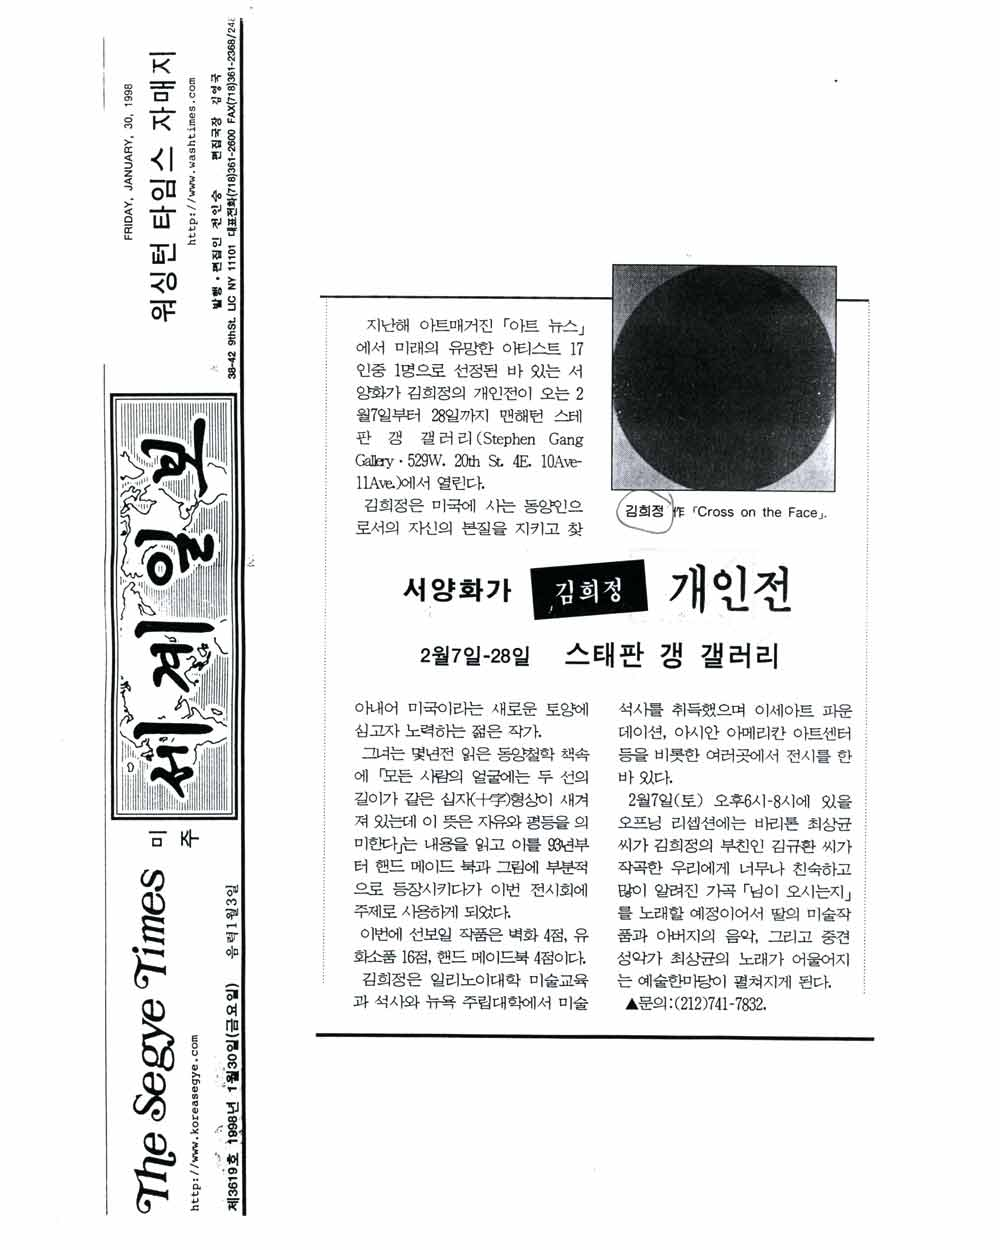 The Segye Times, article